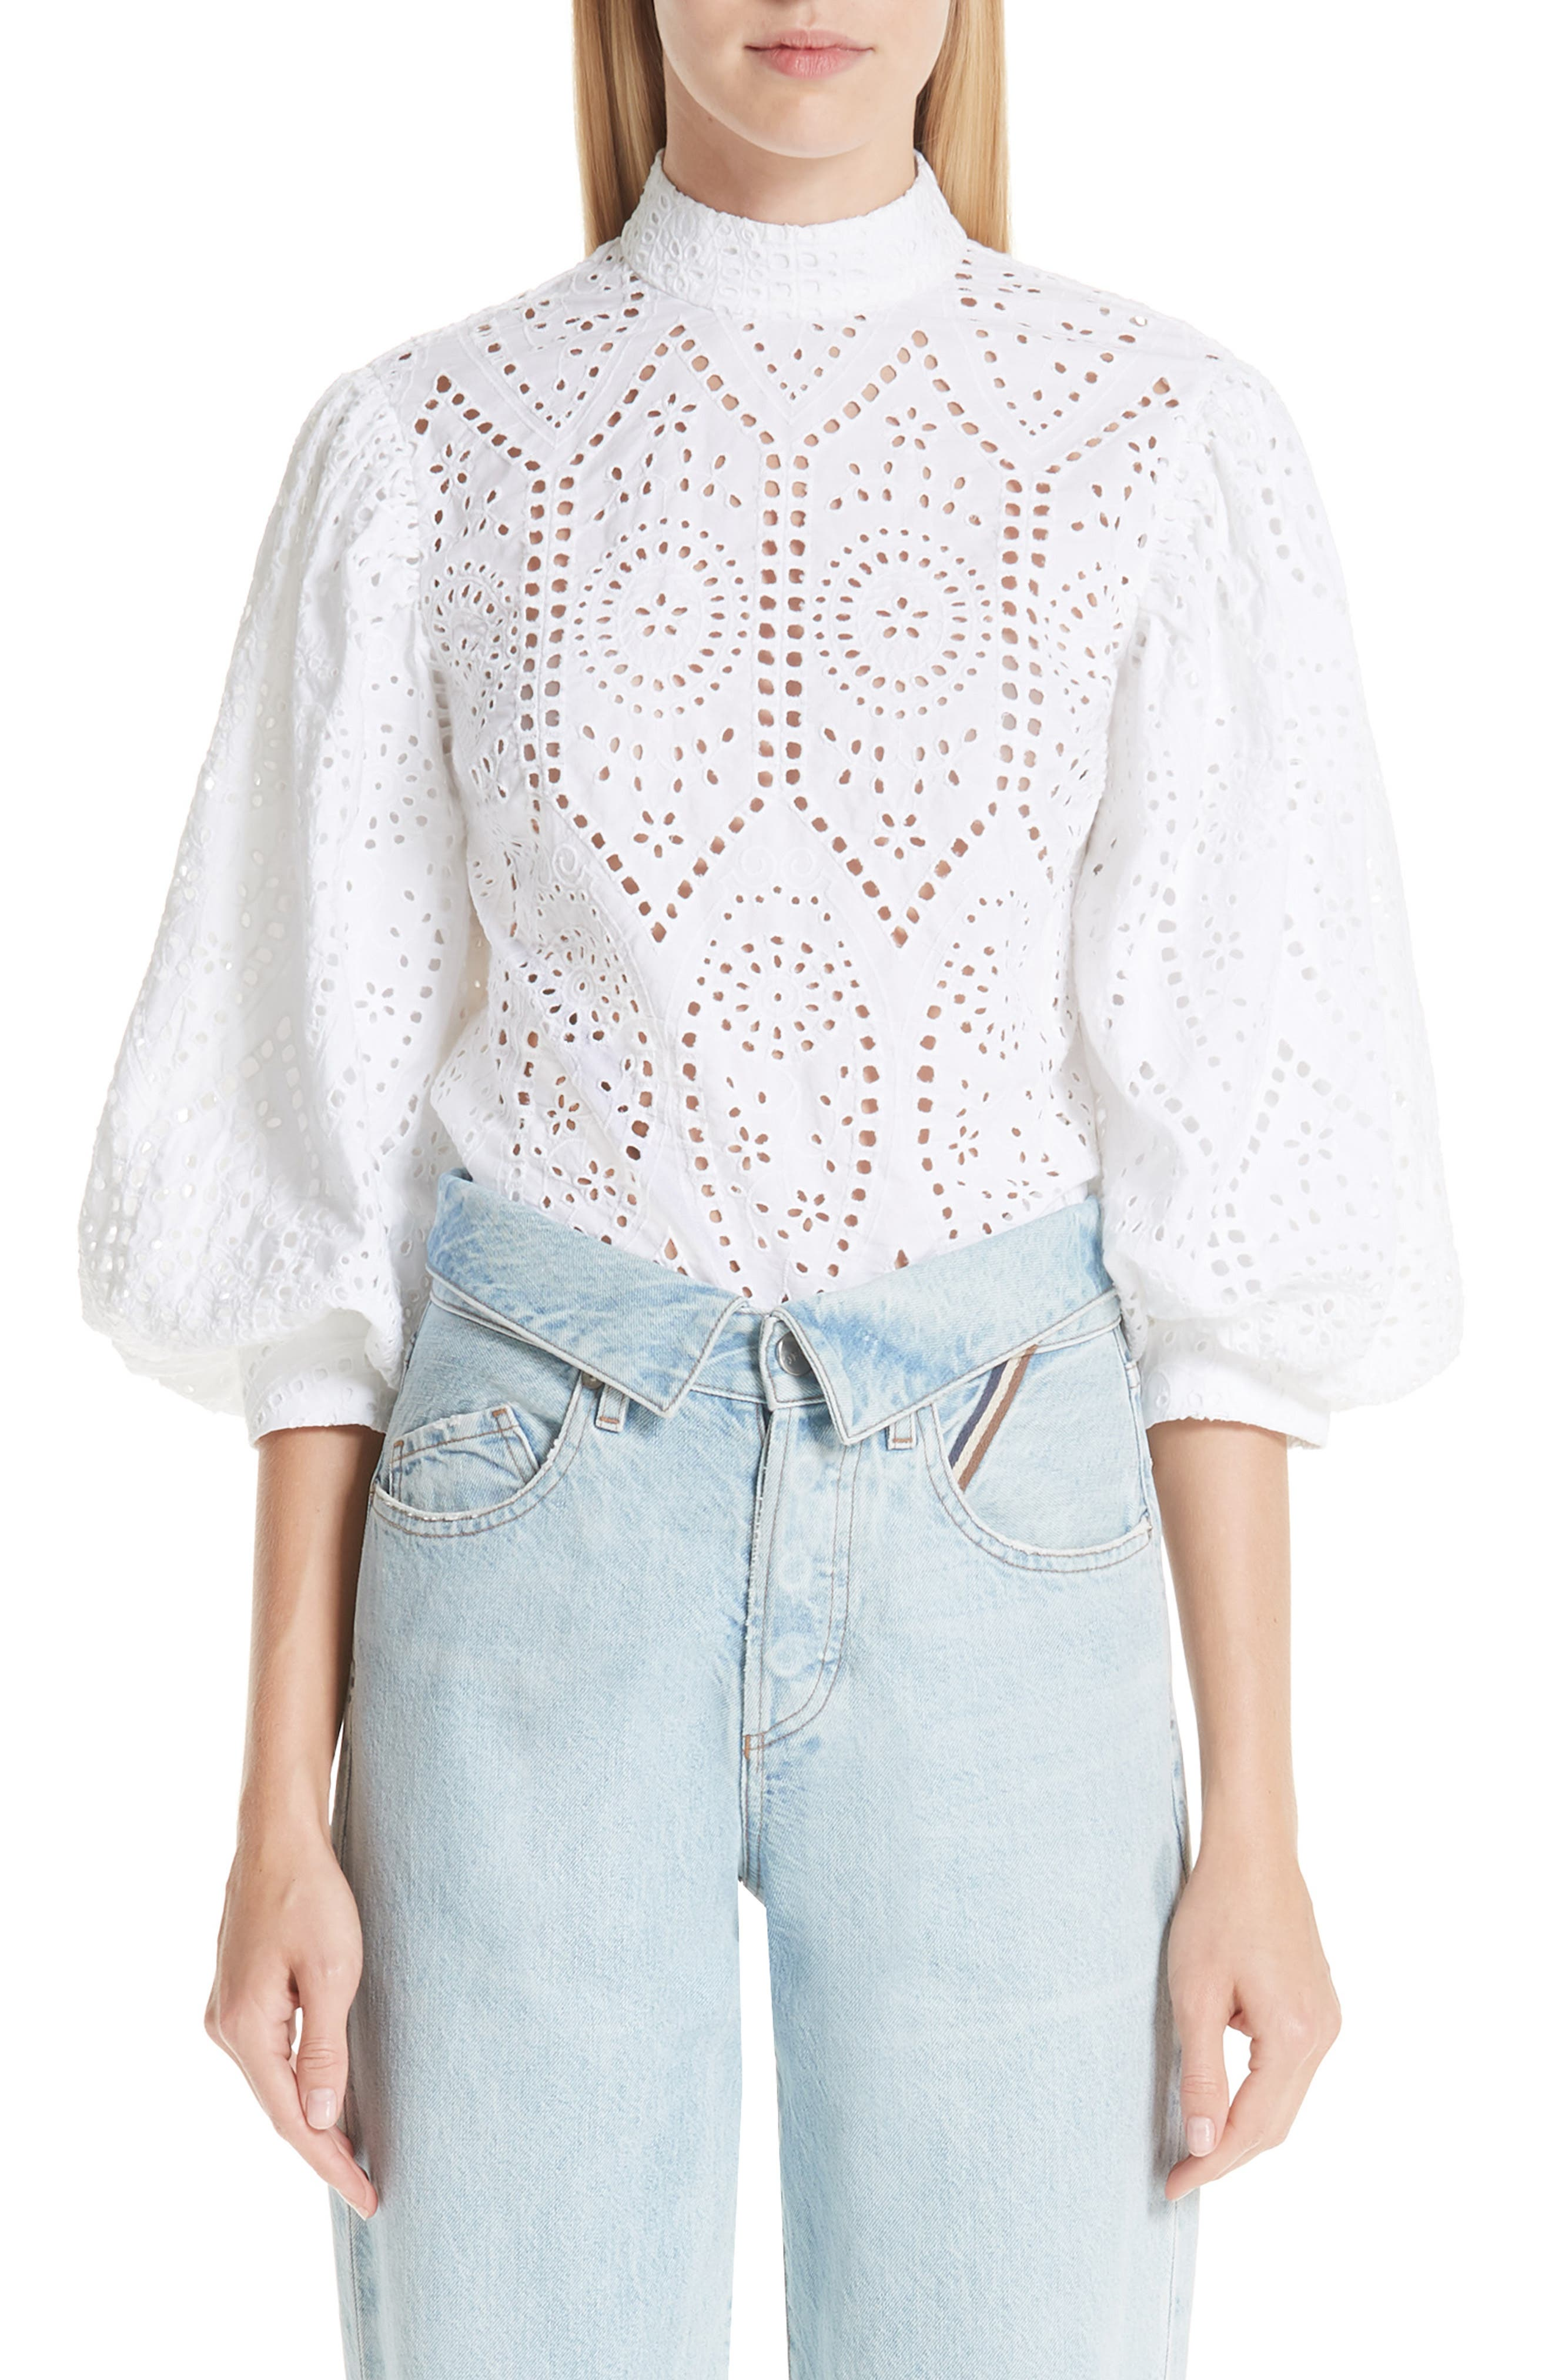 Broderie Anglaise Shirt,                         Main,                         color, BRIGHT WHITE 151